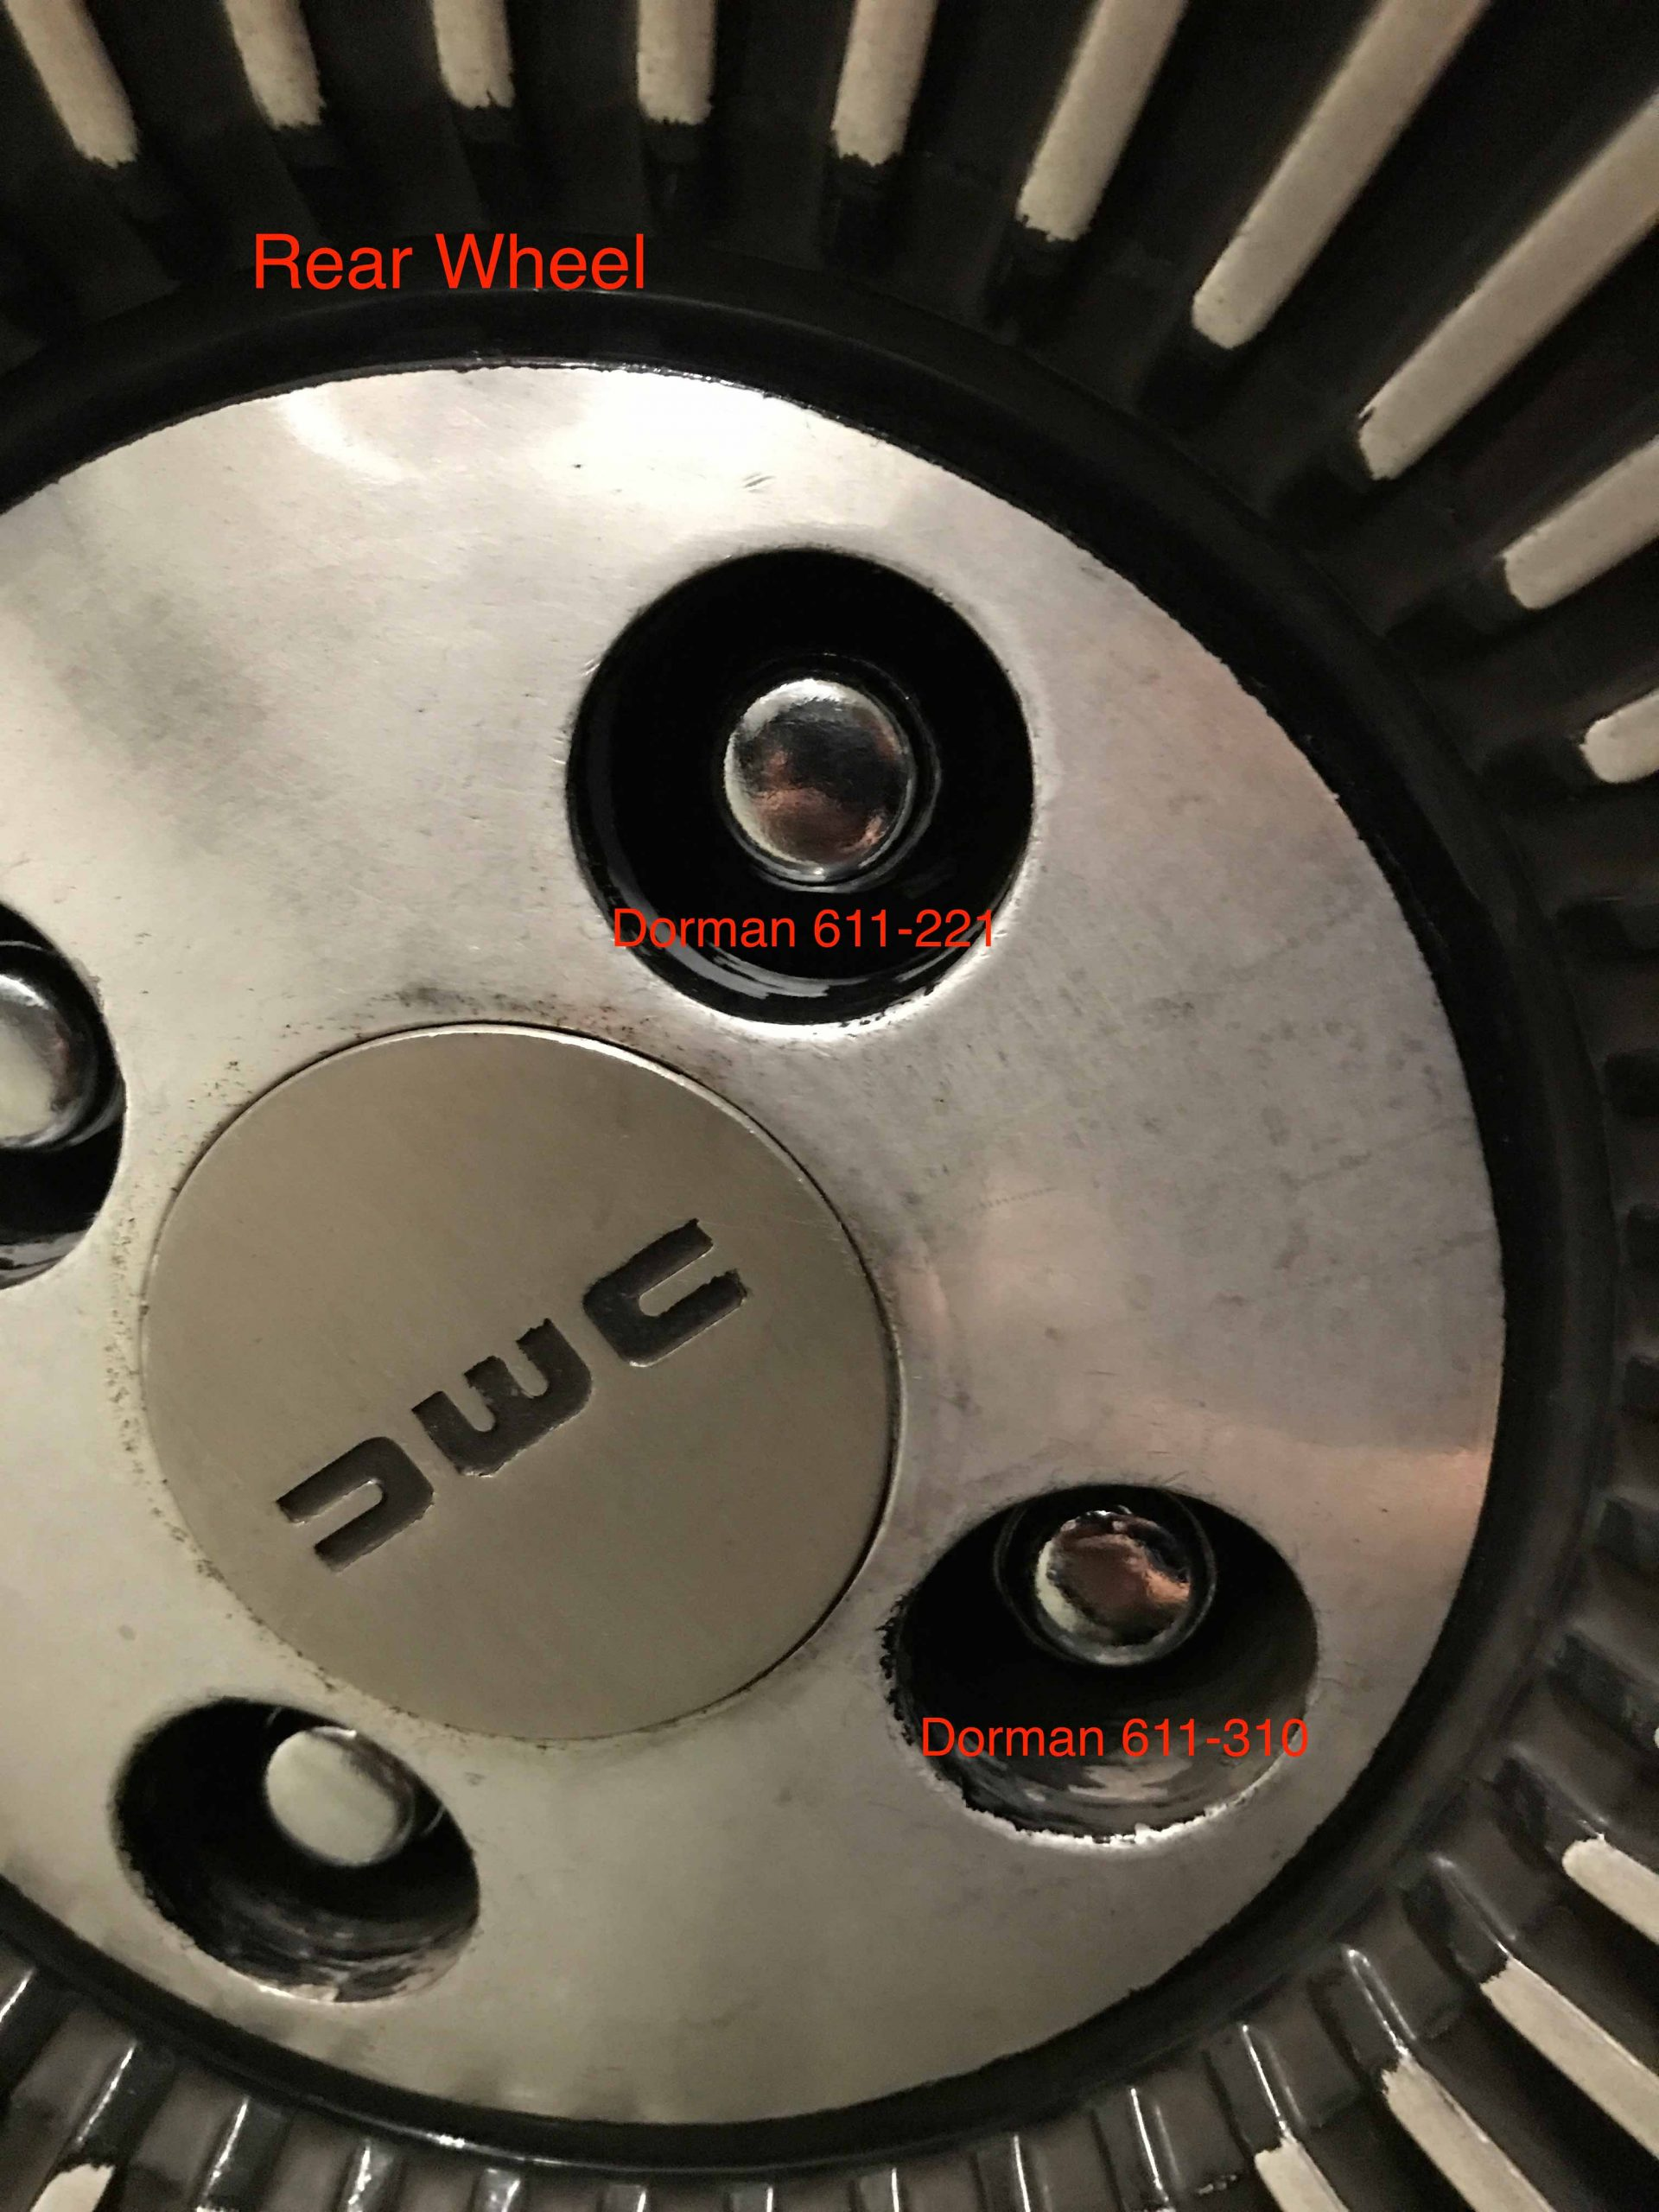 DeLorean Lug Nuts in Wheels | DeLoreanDirectory.com